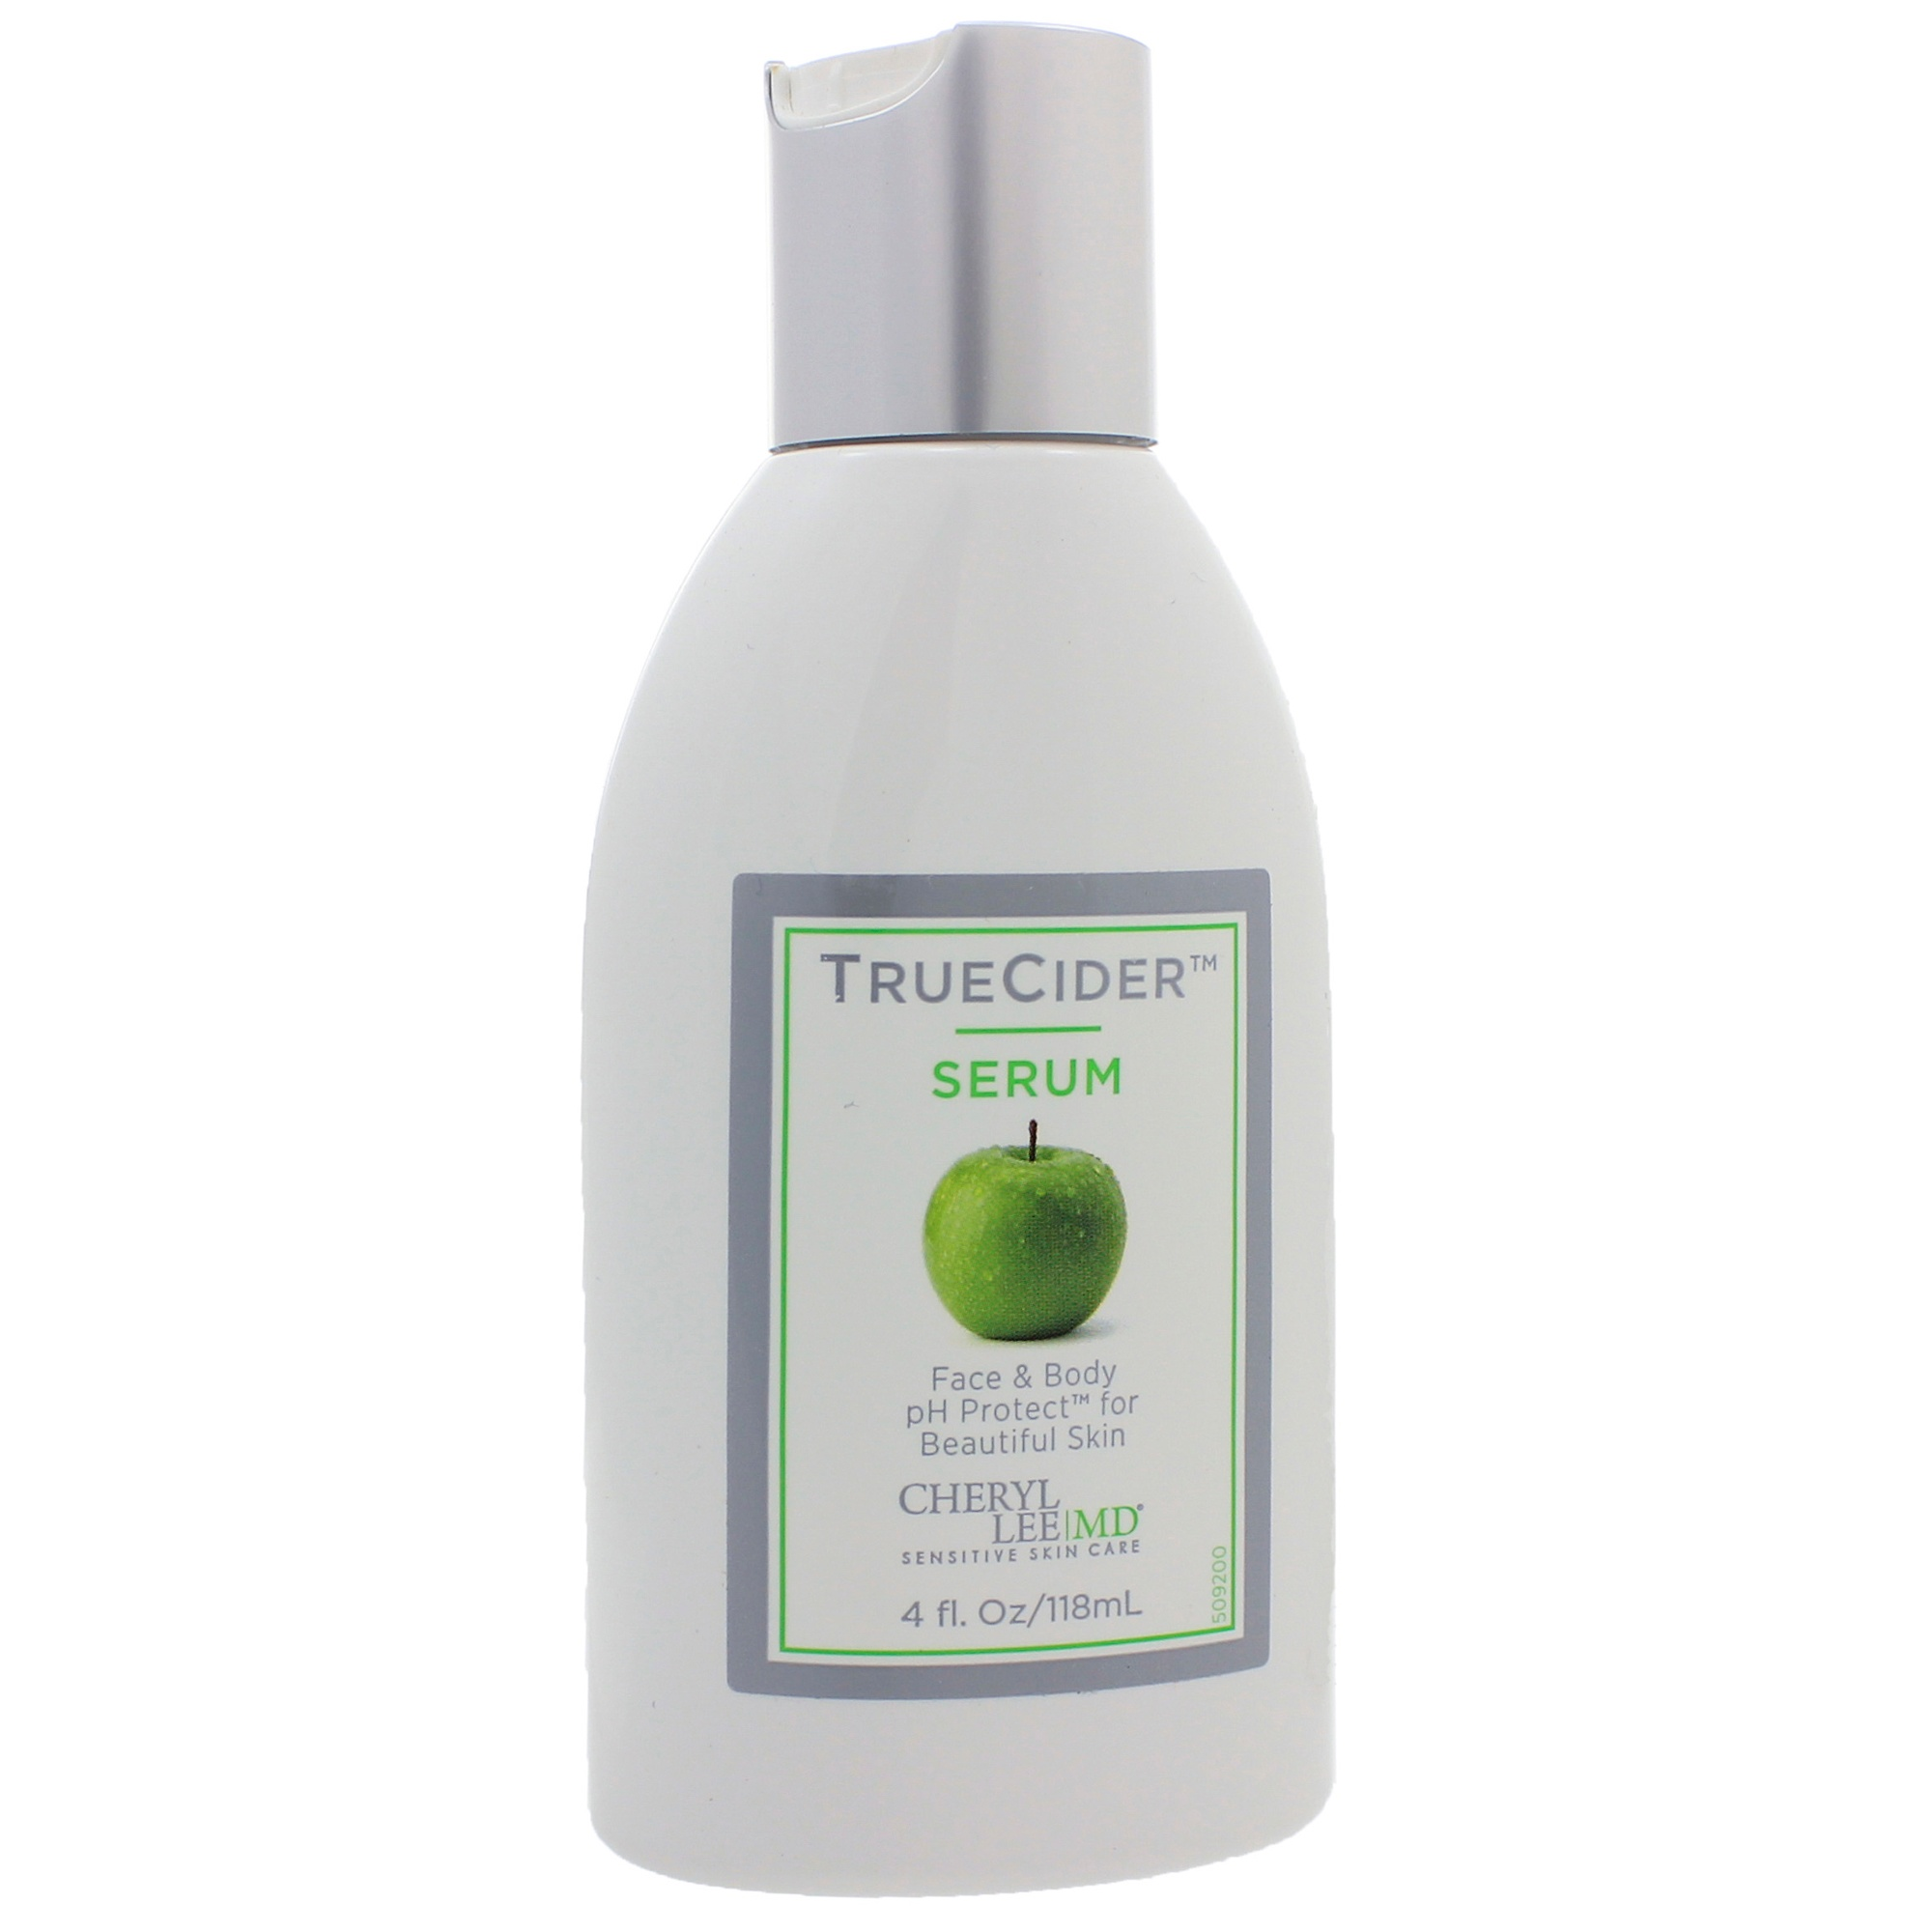 Cheryllee MD TrueCIder Face & Body Serum 4 Ounces